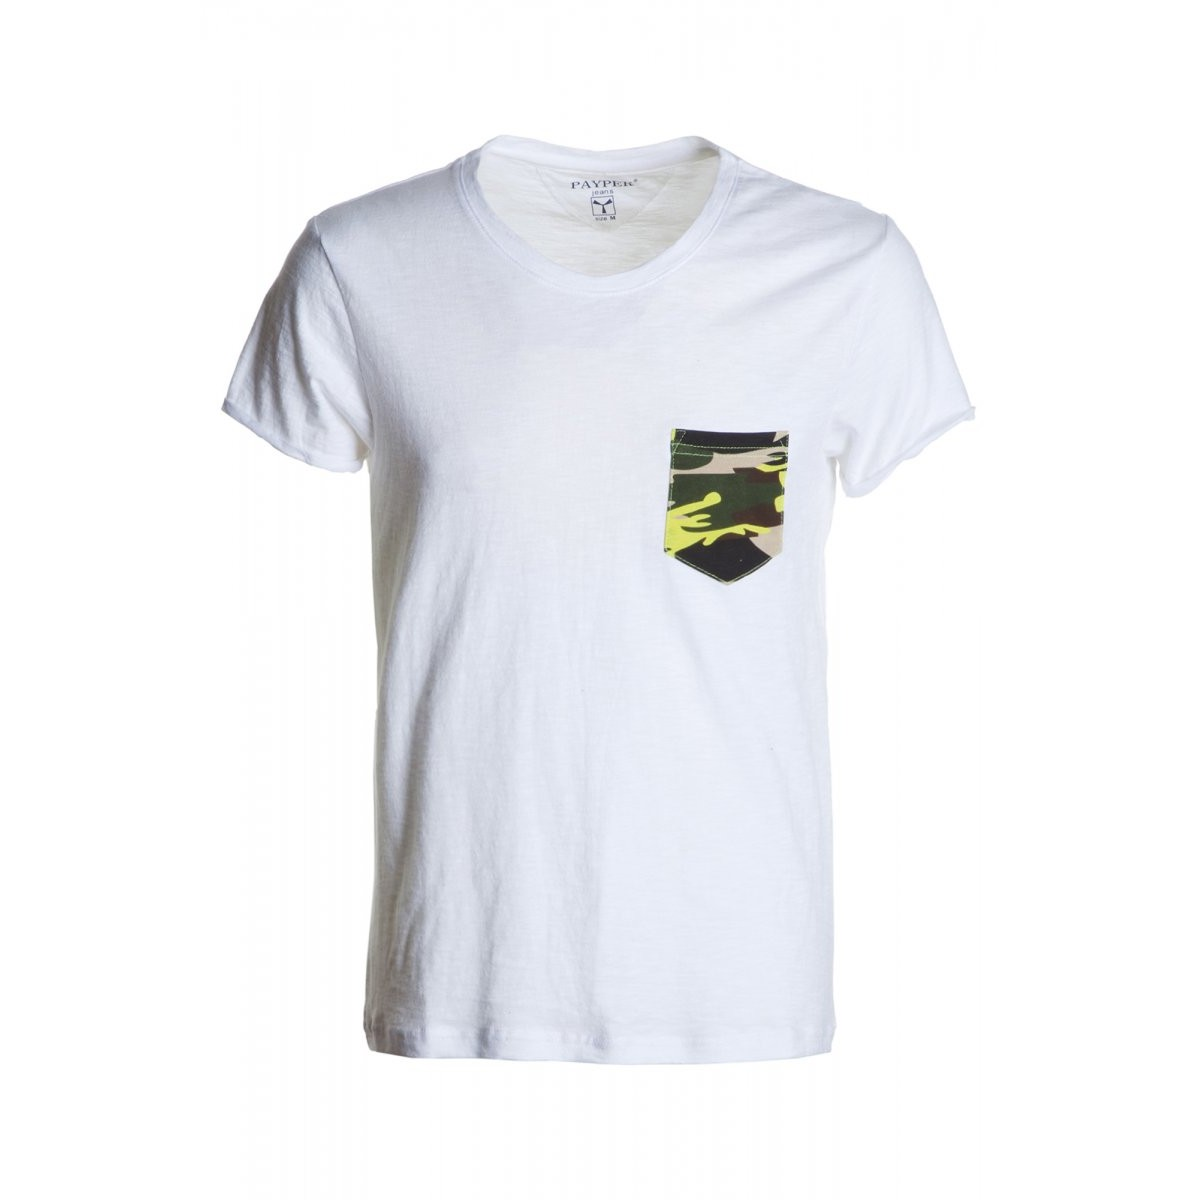 finest selection 9b961 b3389 t-shirt discovery pocket payper uomo a girocollo con manica ...